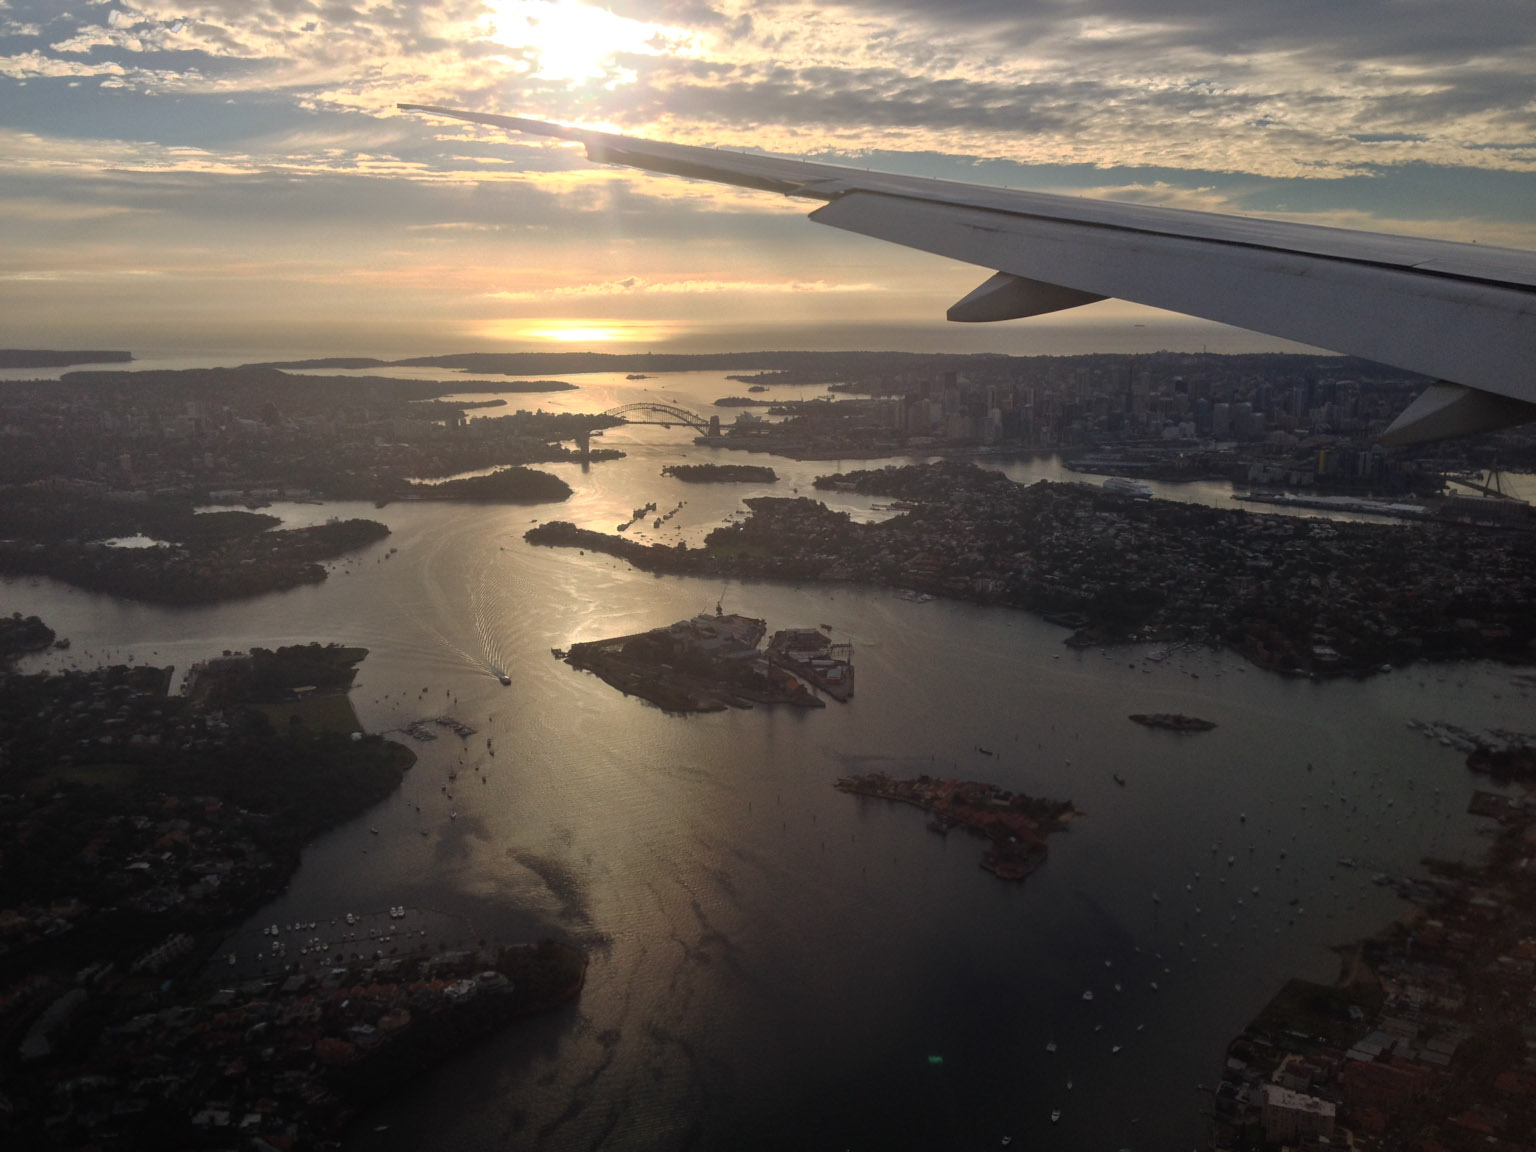 Early morning over Sydney harbour